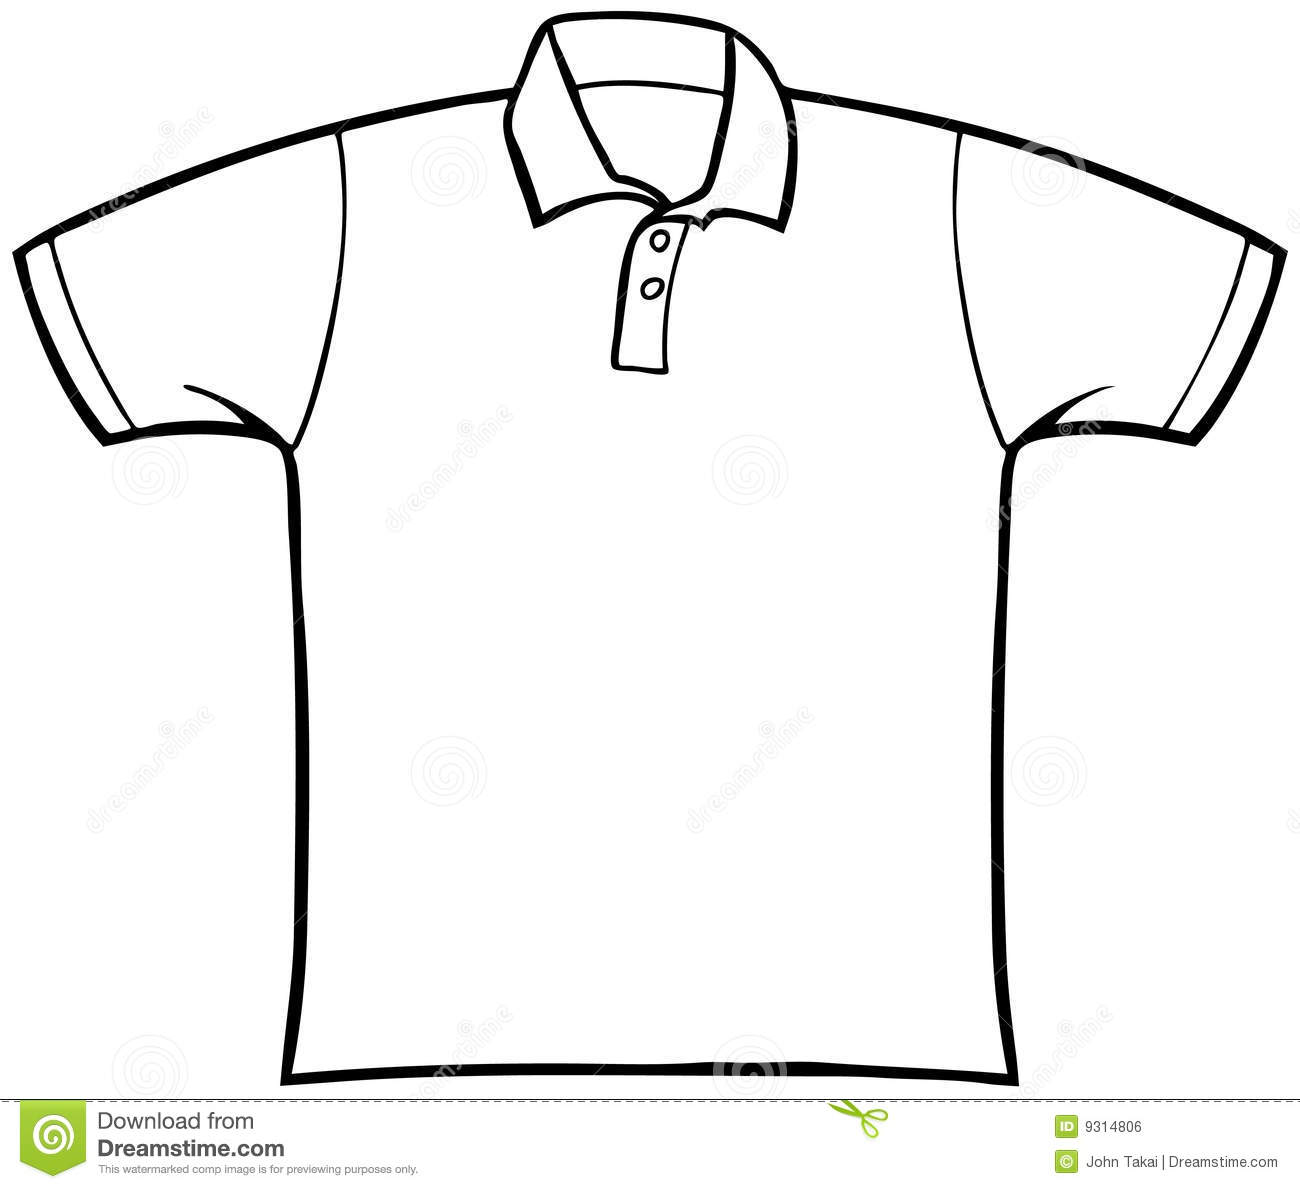 T-shirt Outline Clipart - Clipart Suggest